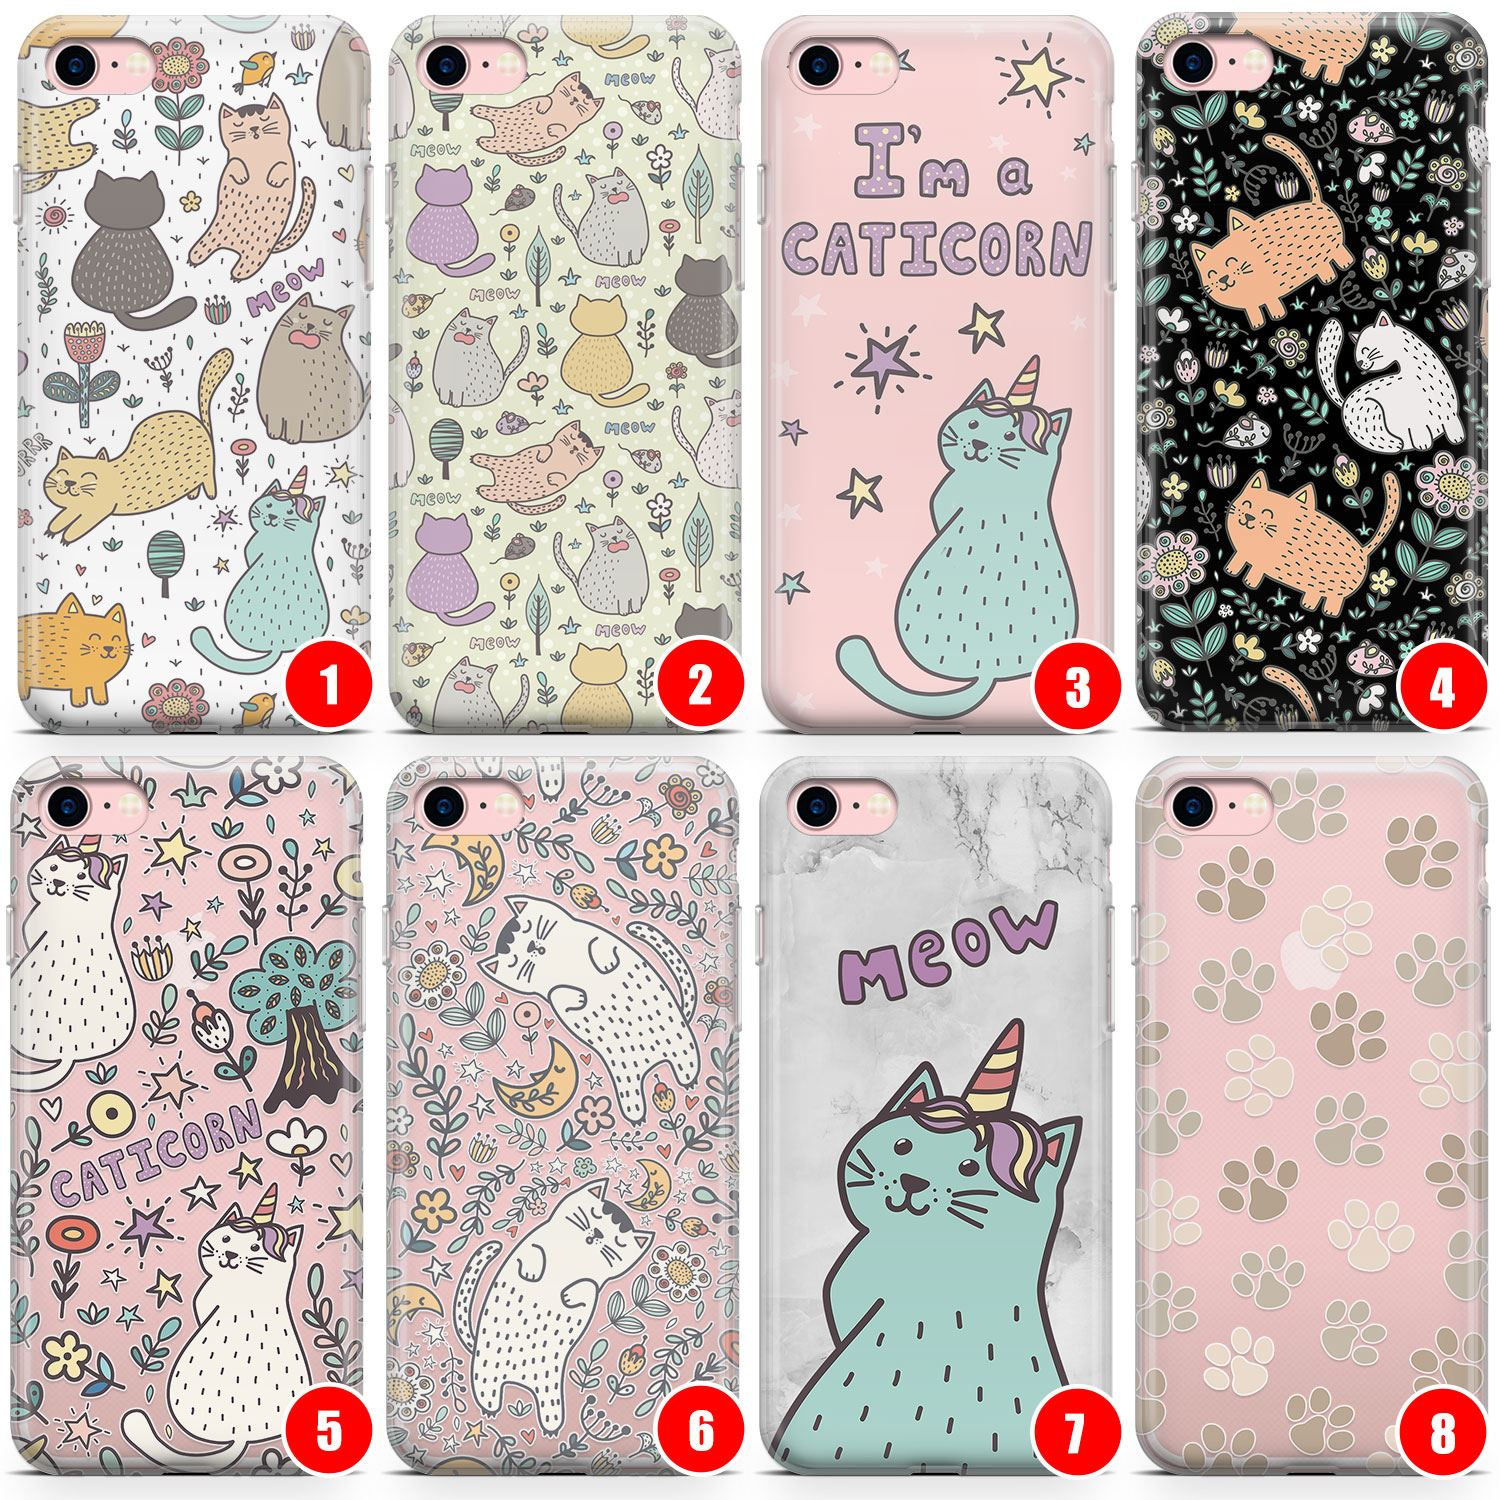 Details About Cats In Paradise Slim Phone Case For Iphone Kitten Leaf Cute Cat Lady Lazy